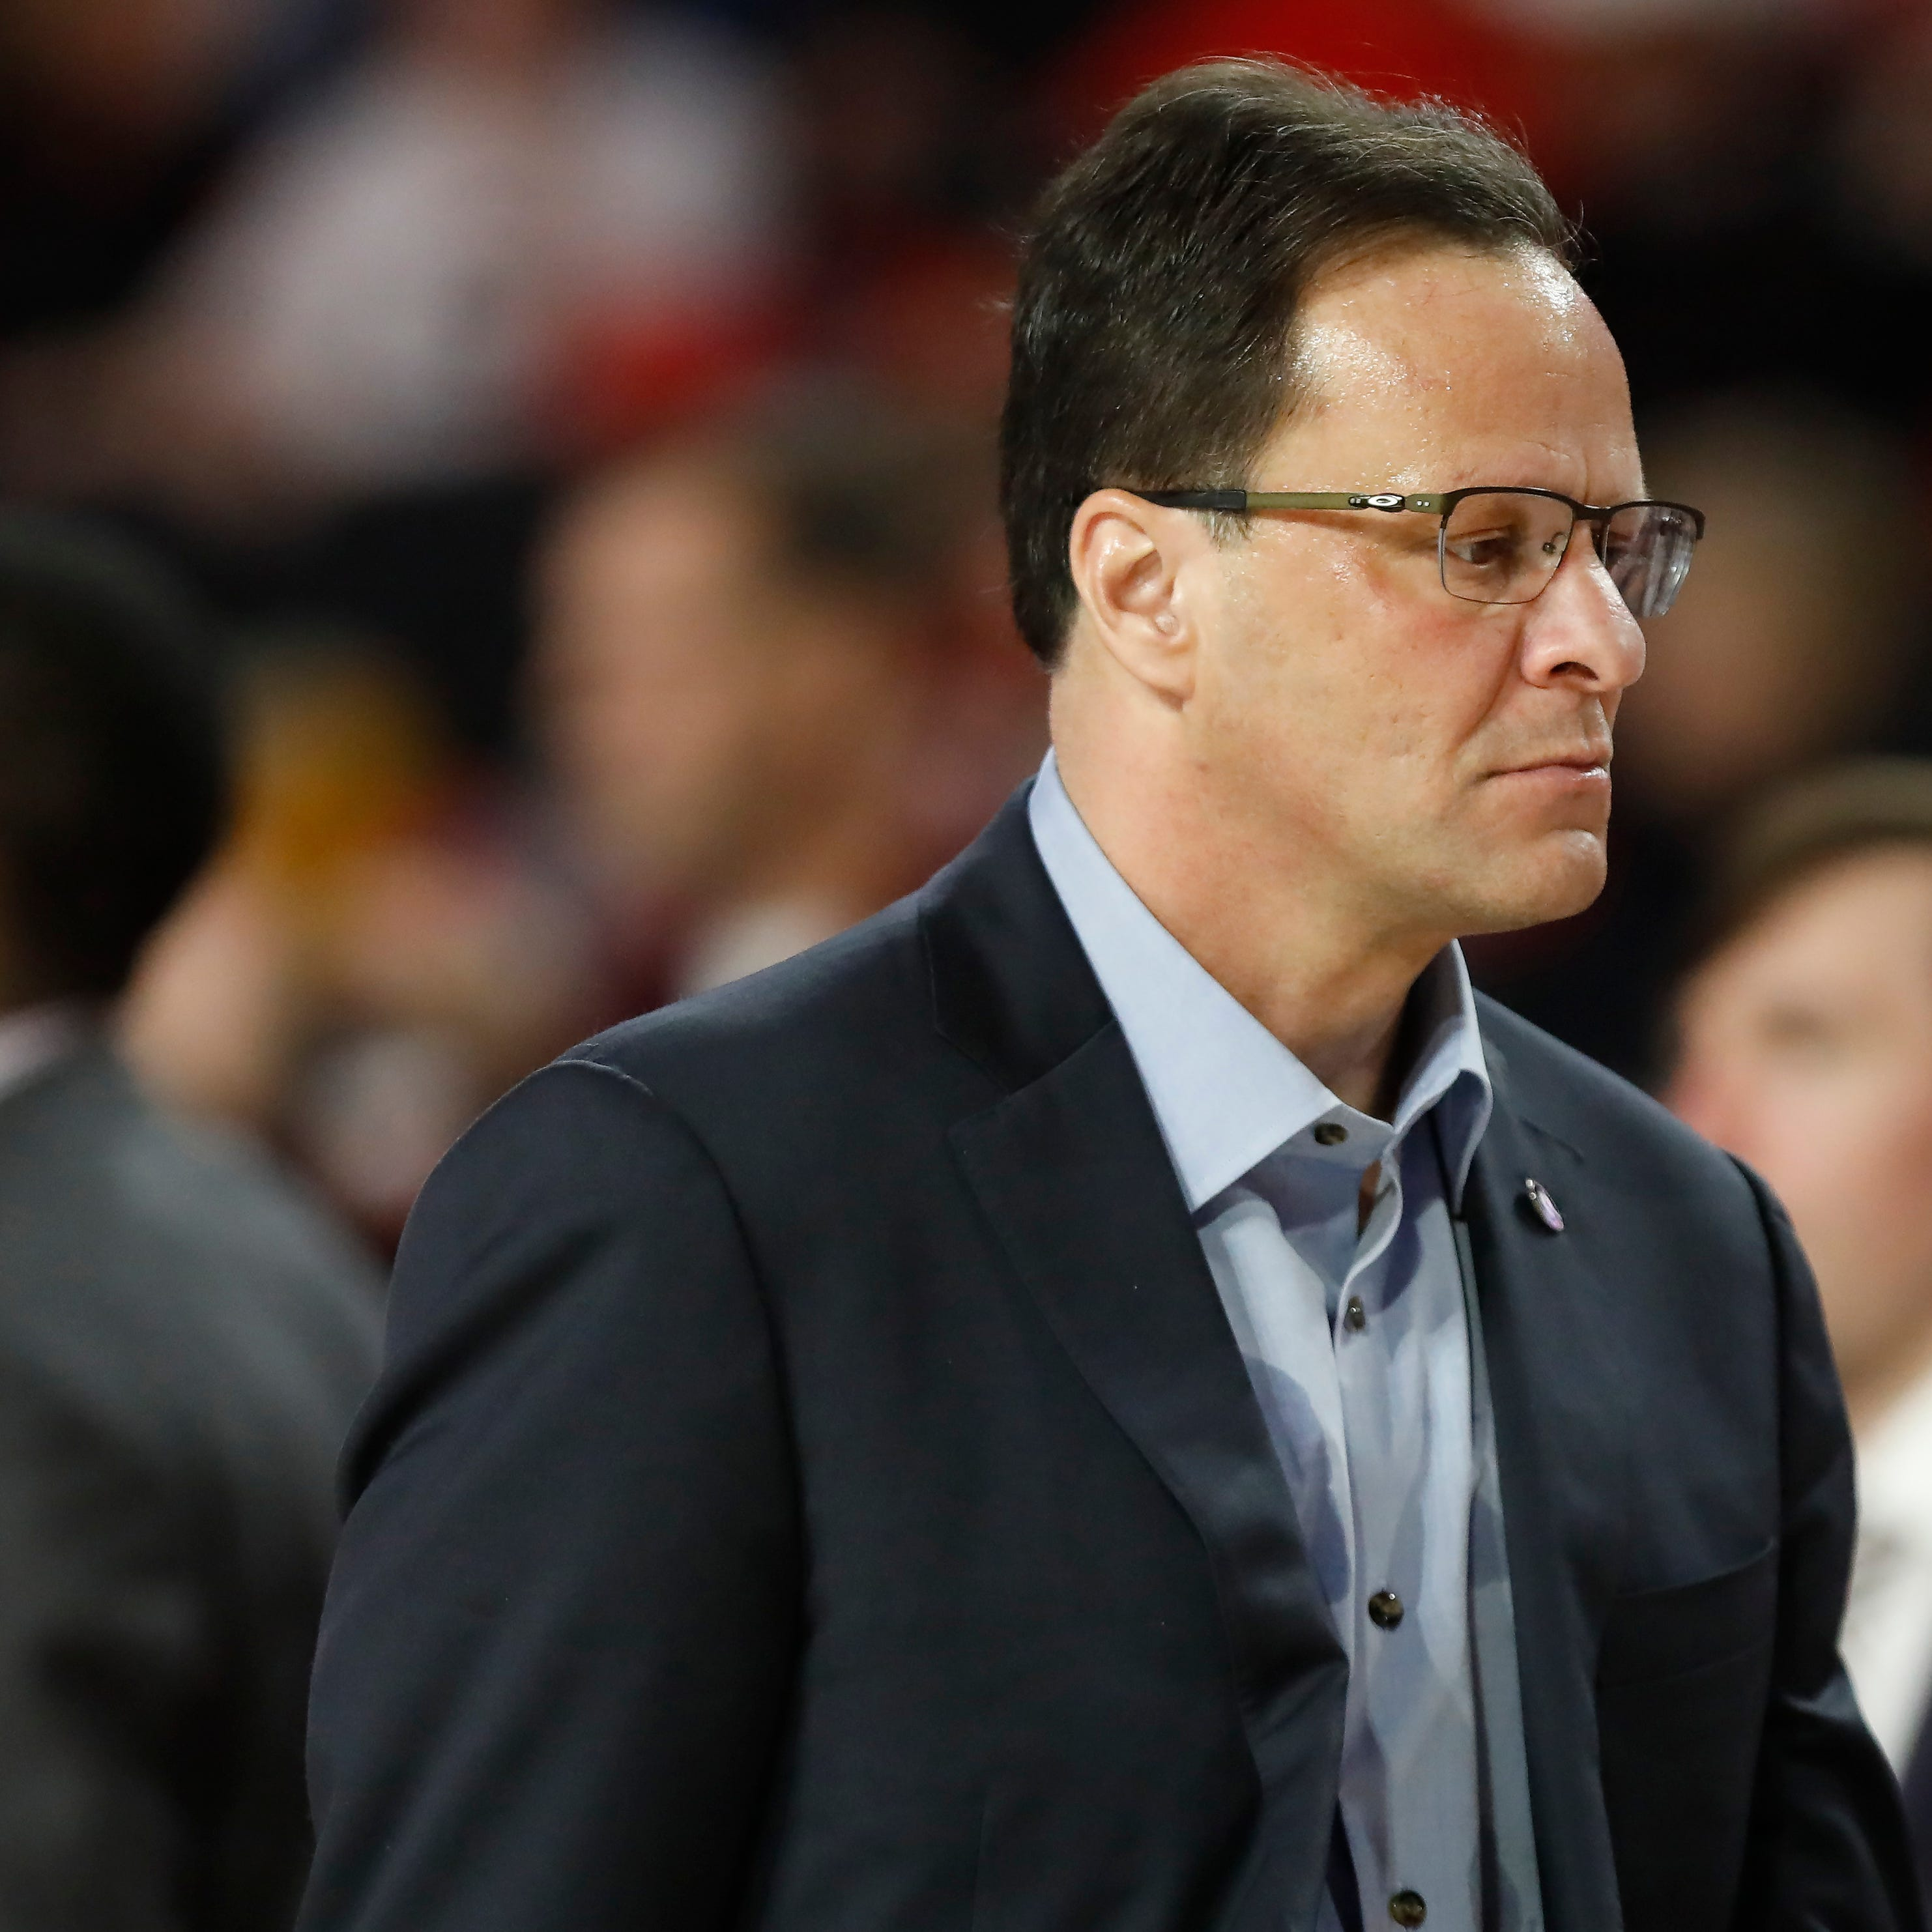 Tom Crean admonishes Georgia fans after stuffed animal thrown onto court